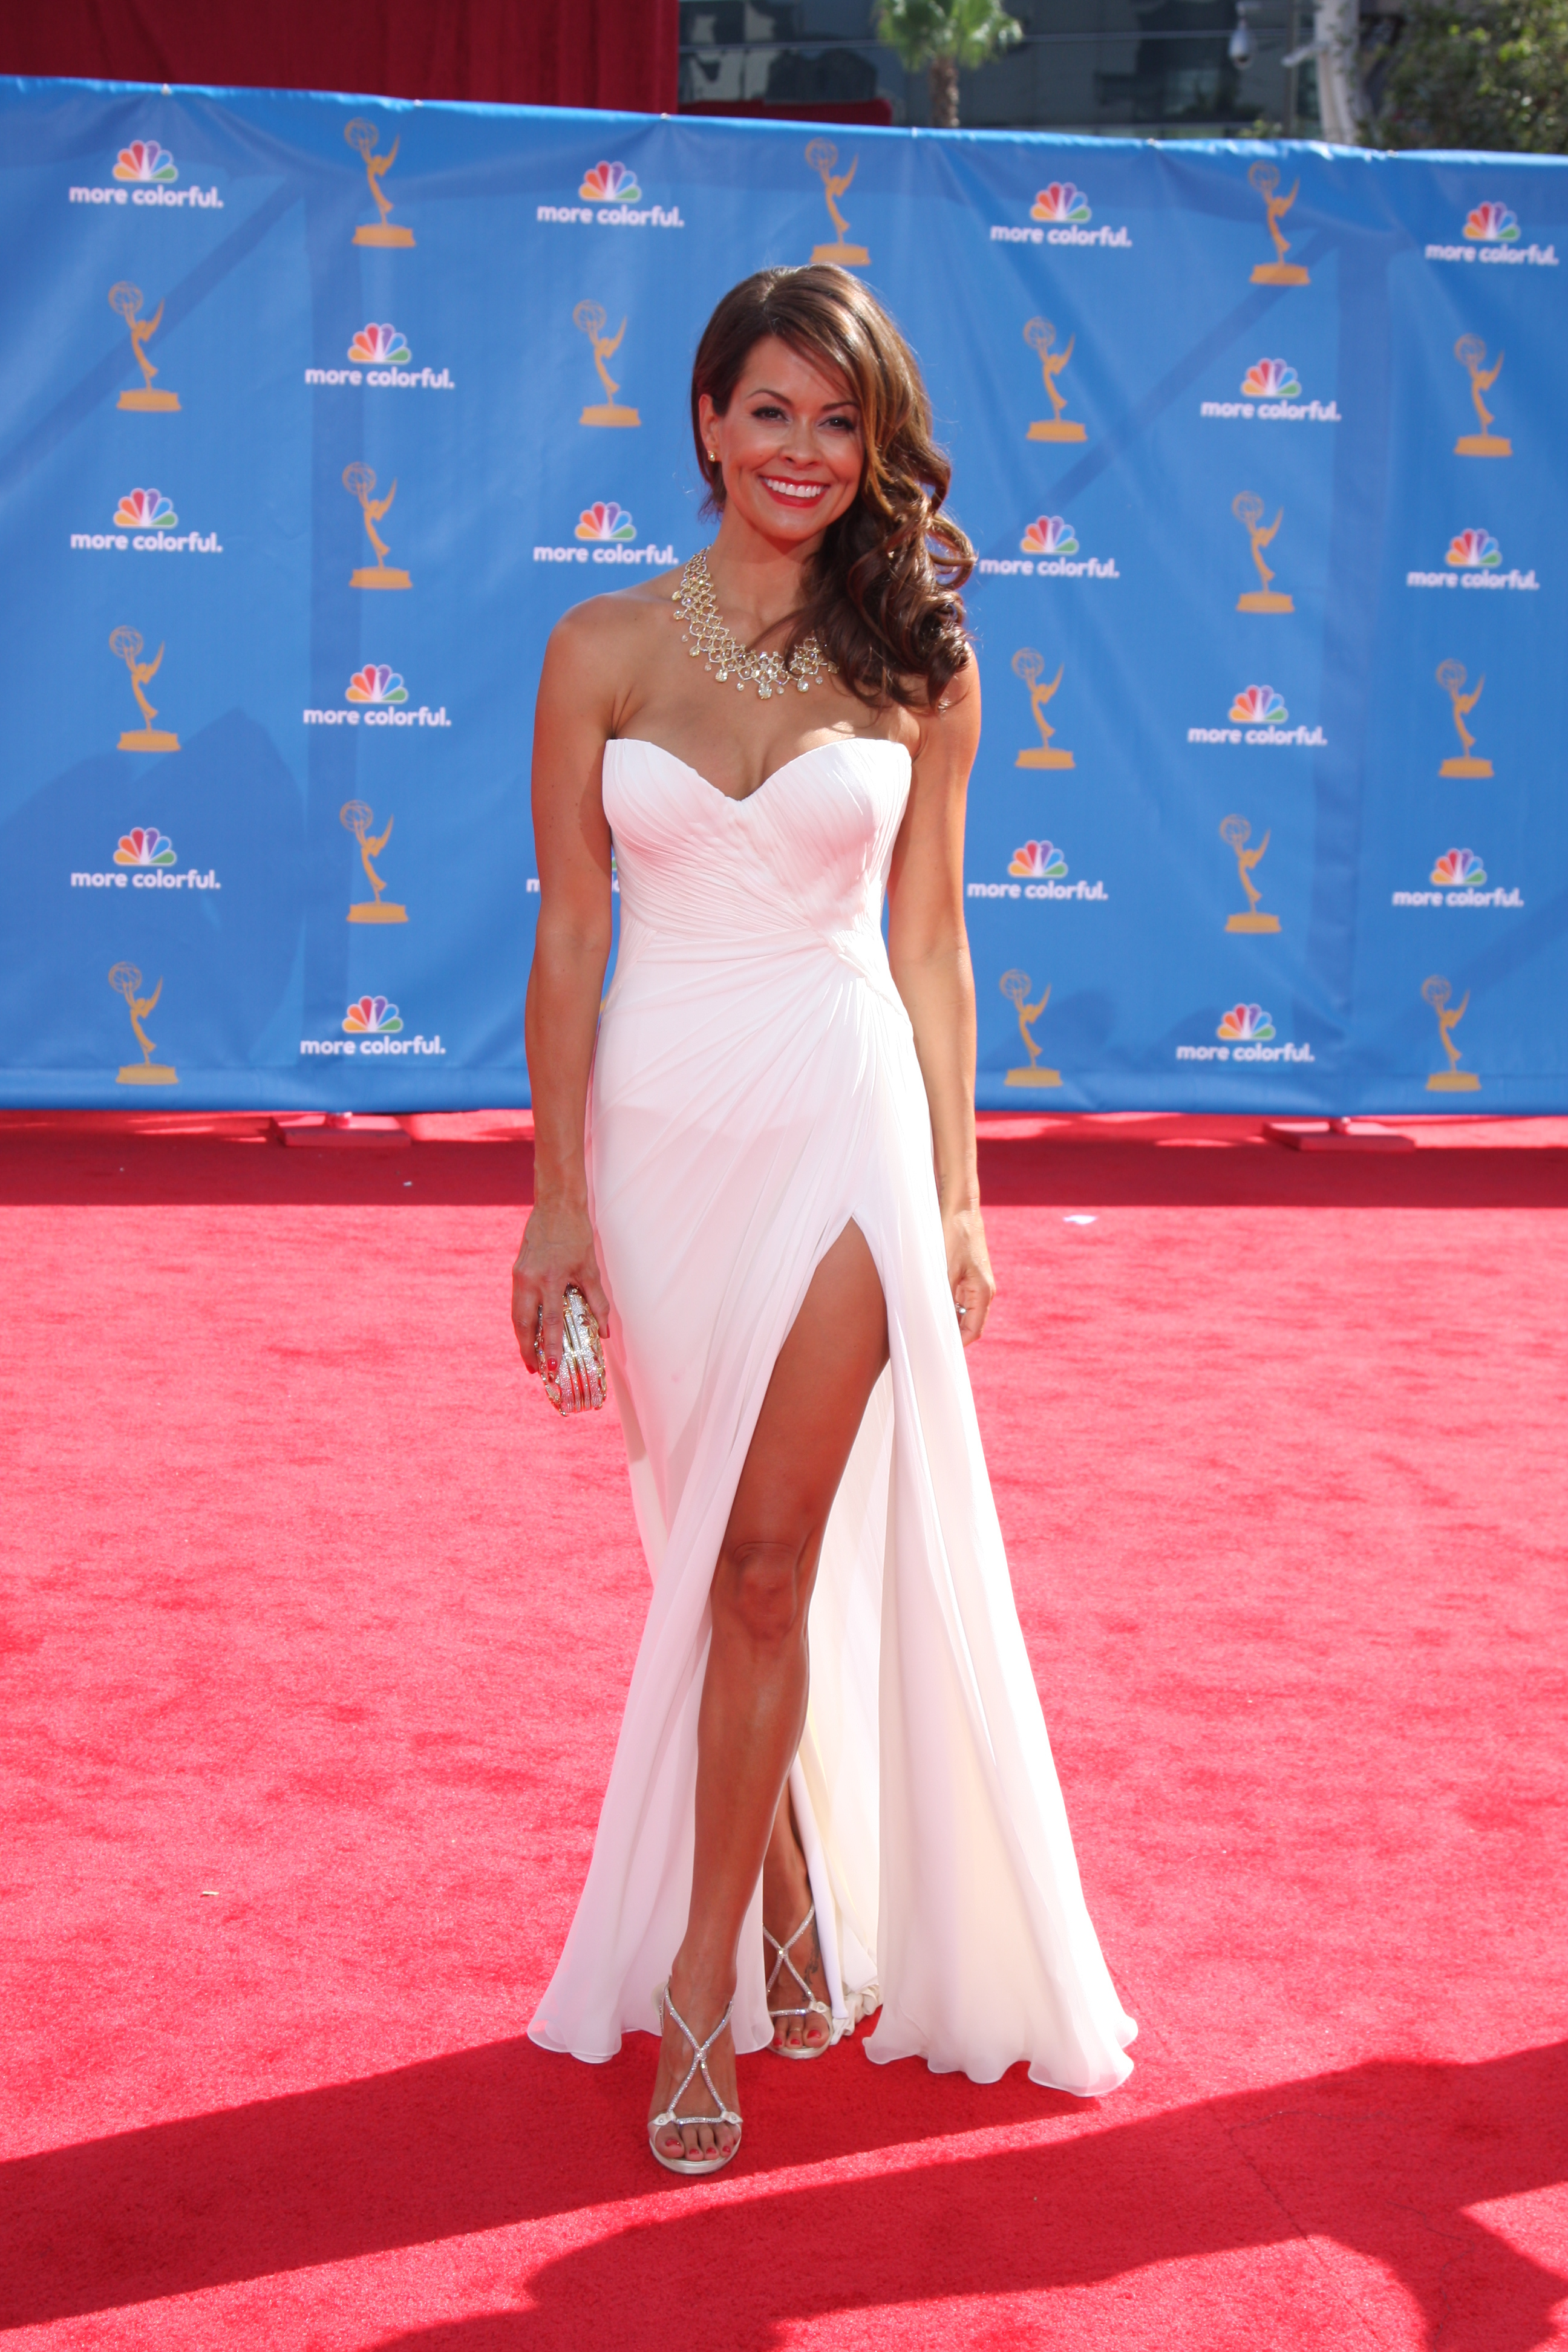 Prominent Profile in Philanthropy: Brooke Burke